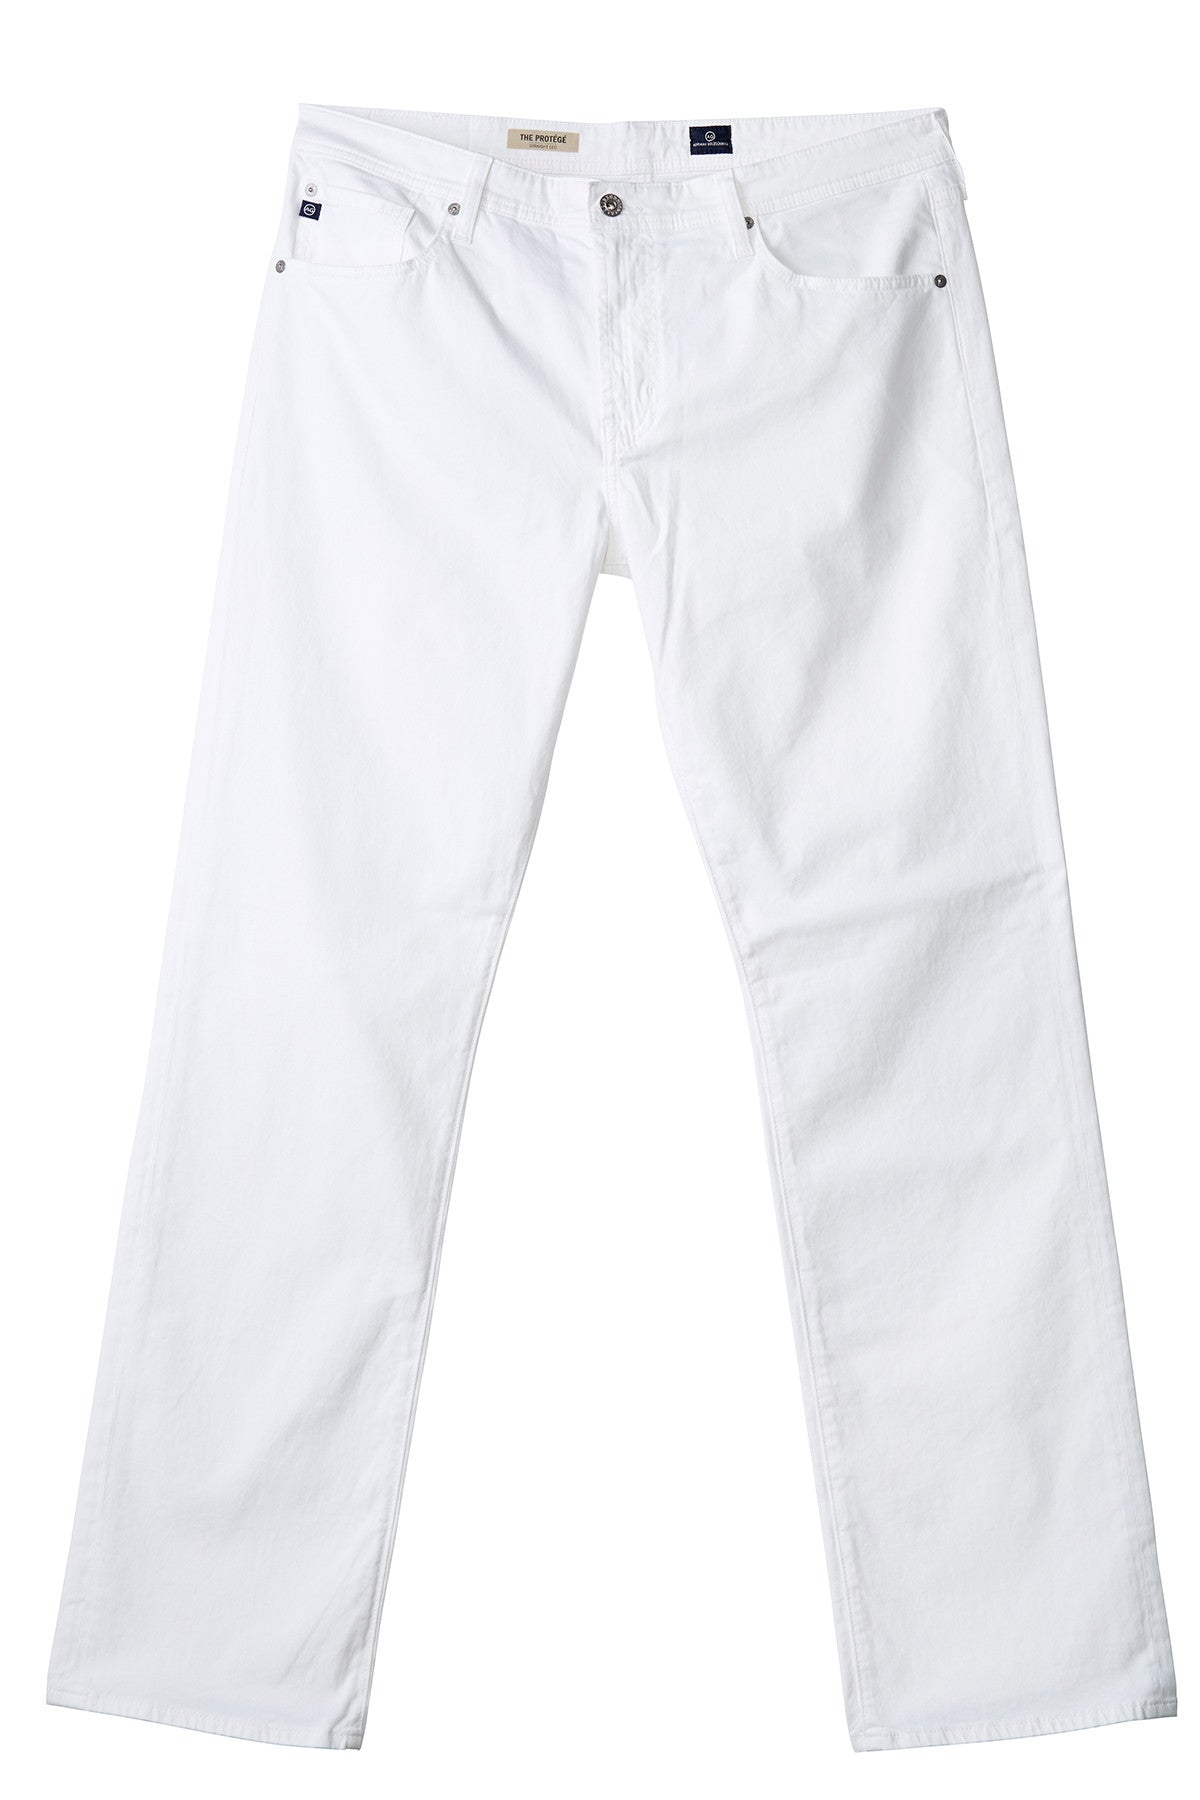 AG 'Matchbox' Slim Fit Twill Pants in Brushed White